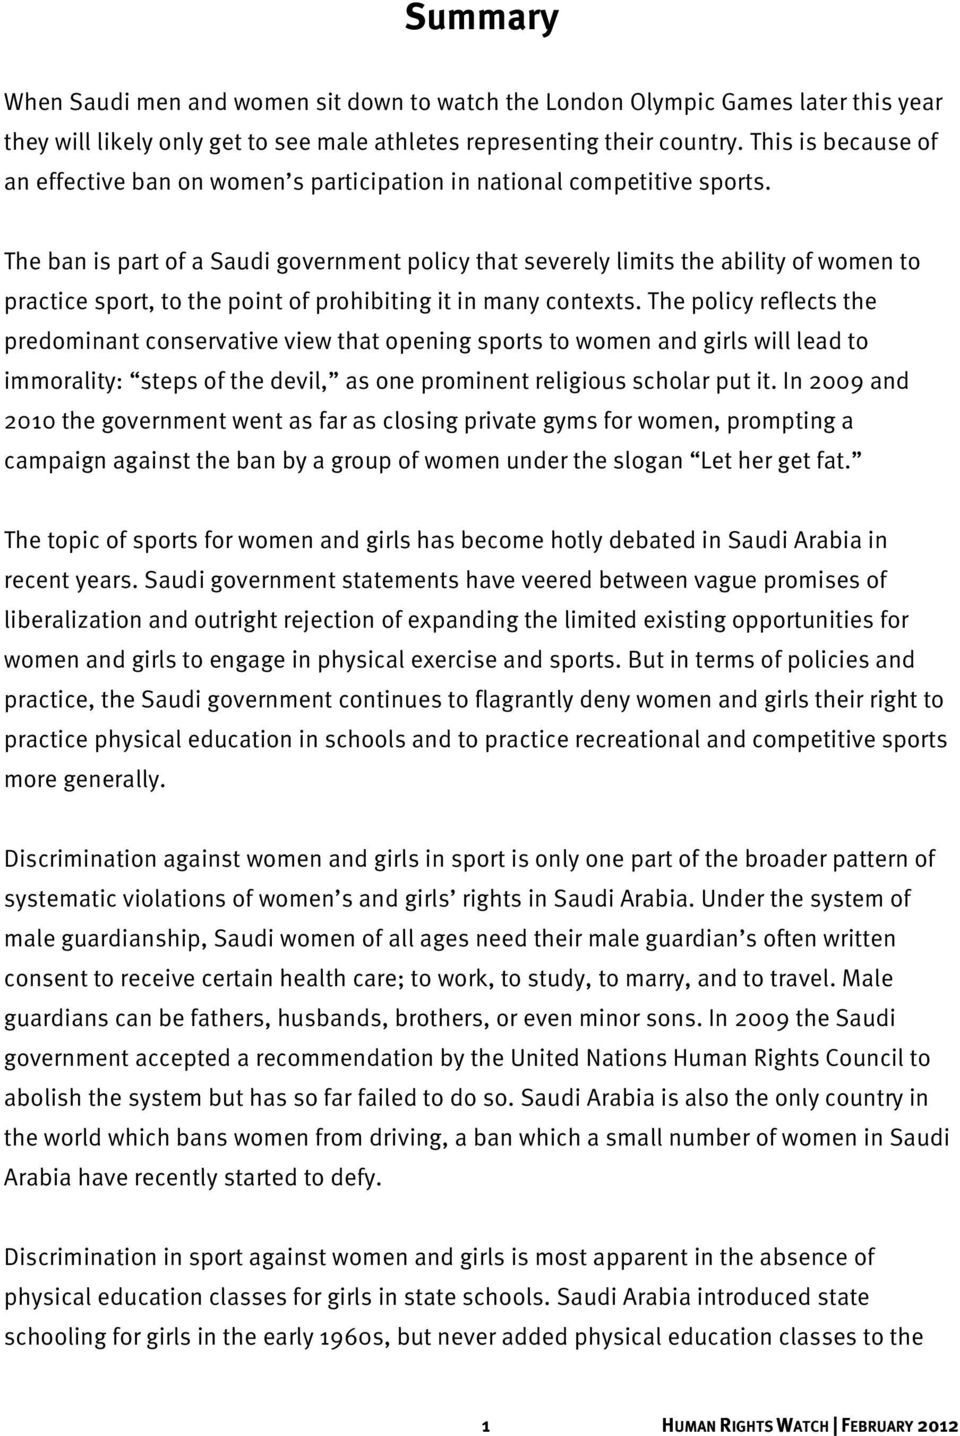 The ban is part of a Saudi government policy that severely limits the ability of women to practice sport, to the point of prohibiting it in many contexts.